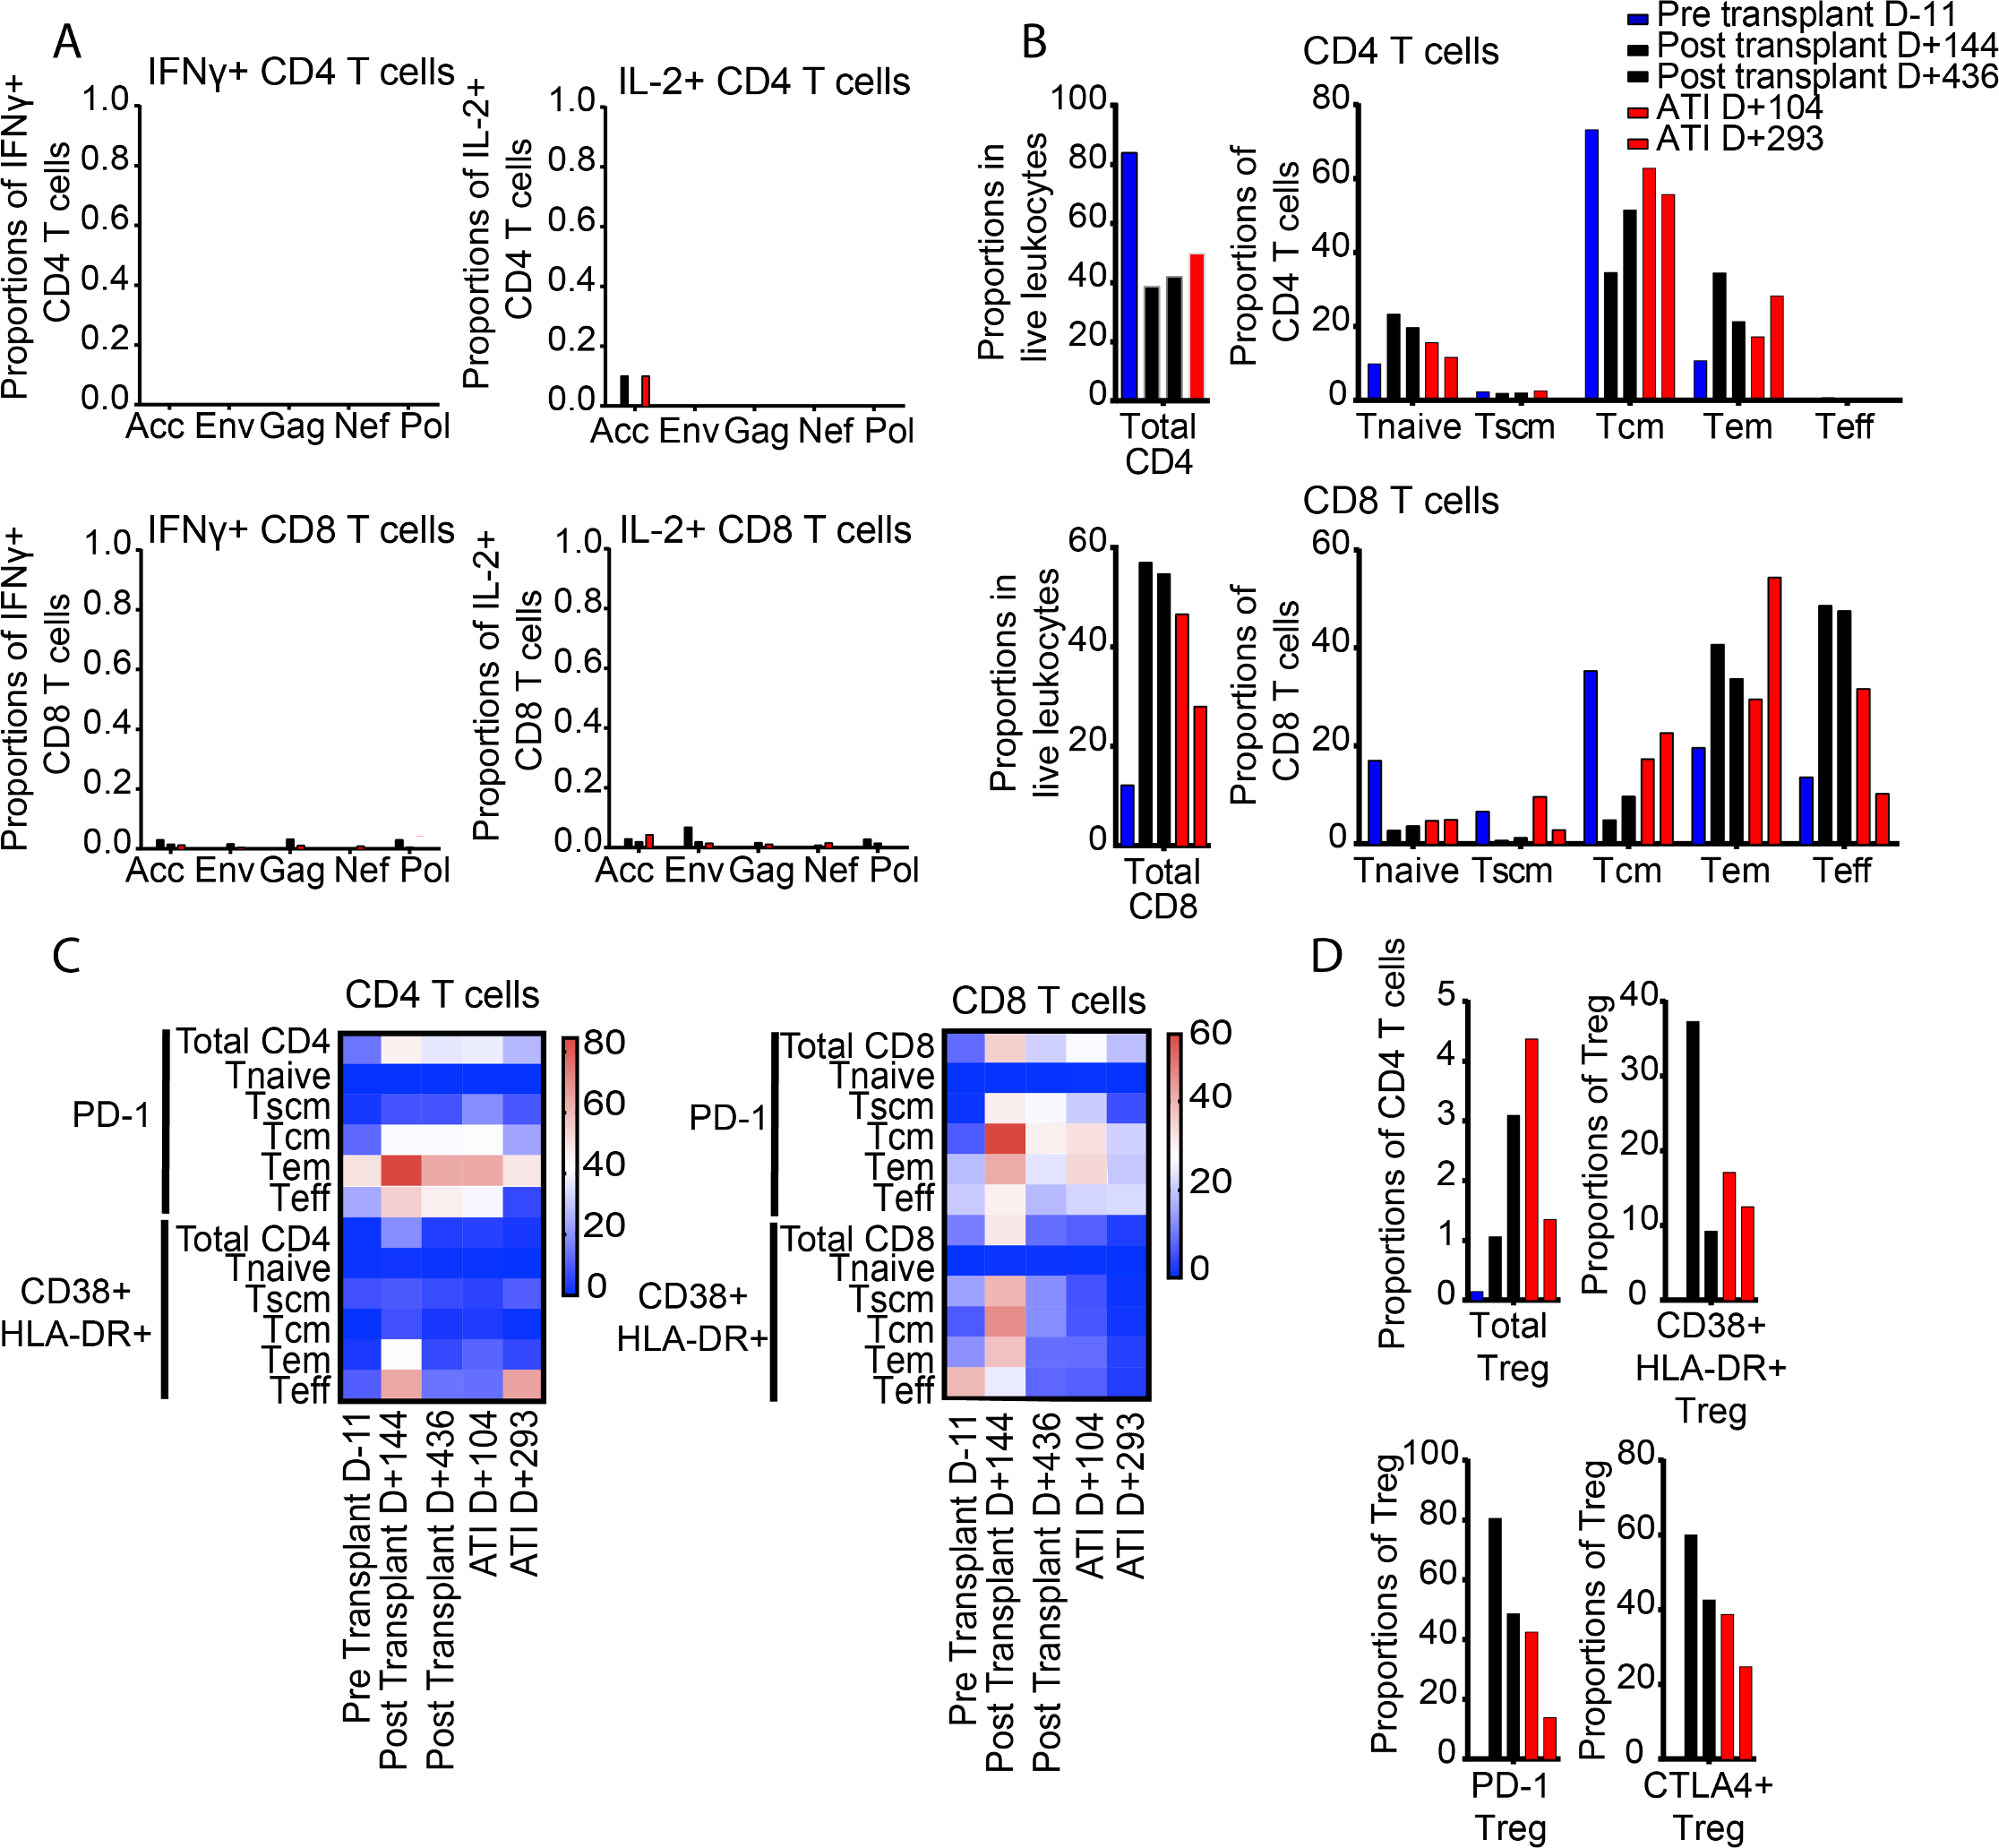 Dynamics of CD4 and CD8 T cell responses in the described patient.